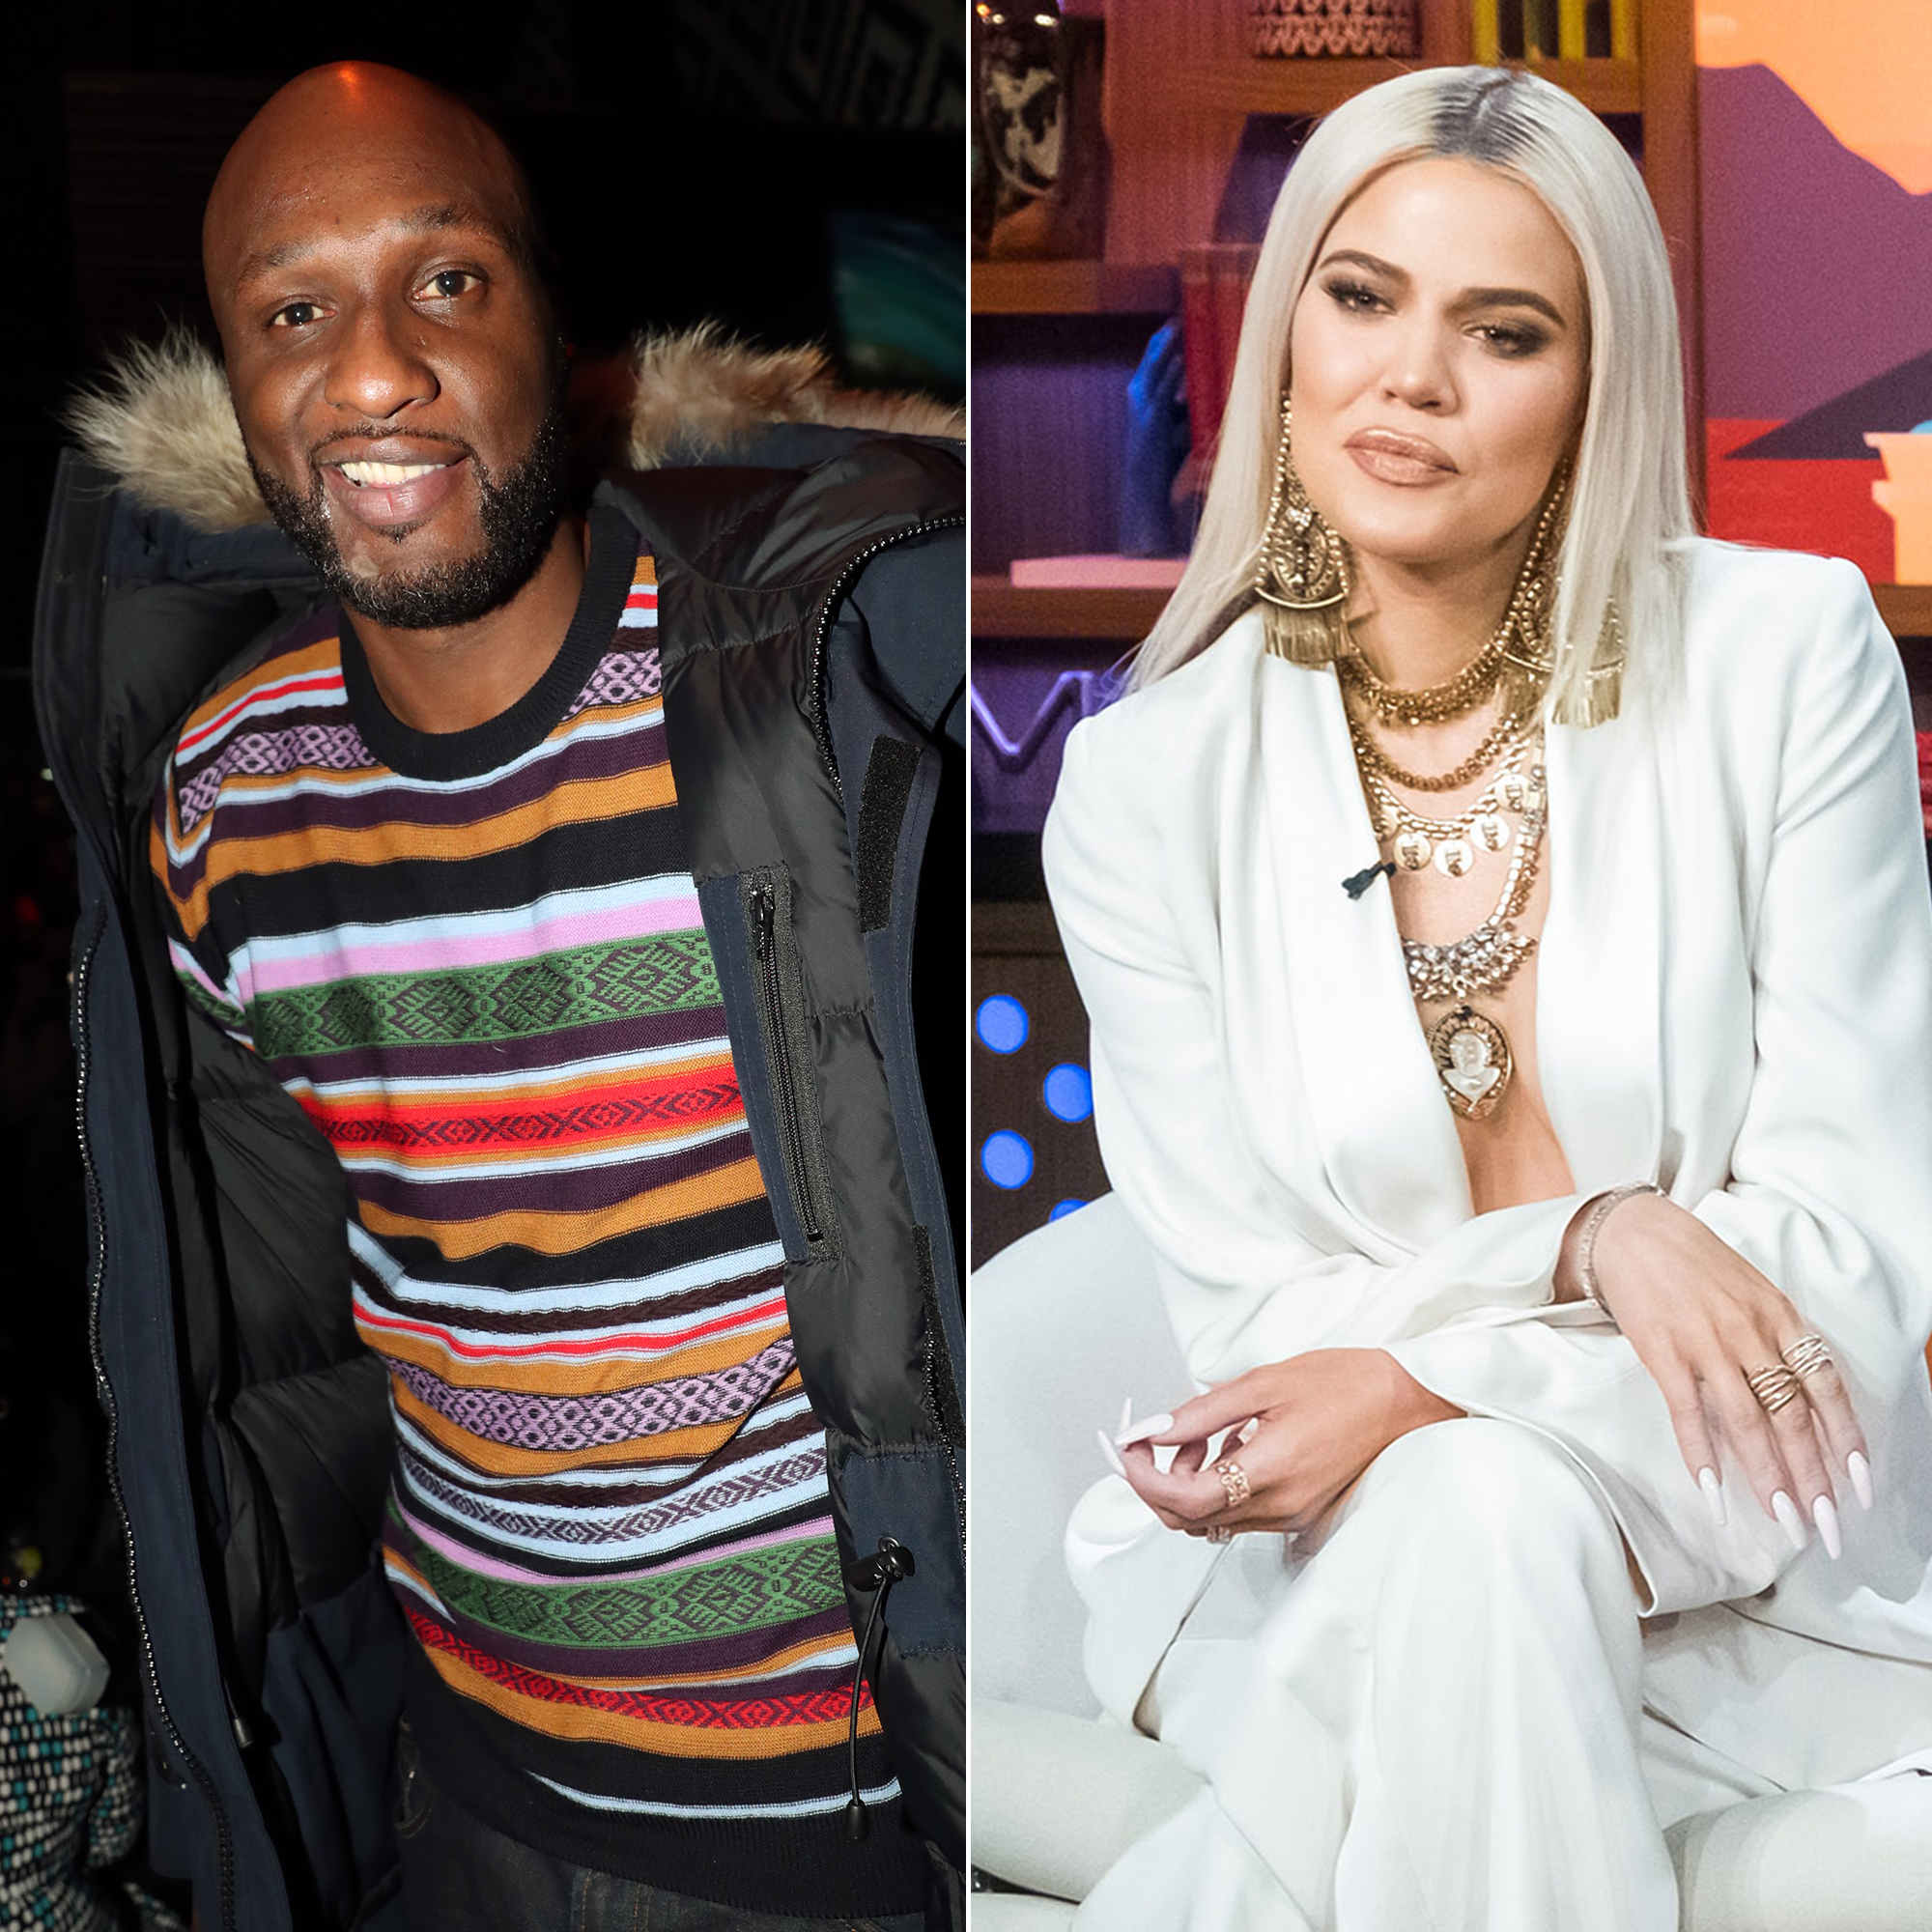 on Lamar Odom dating Khloe Kardashian koukku kulttuuri Wikipedia